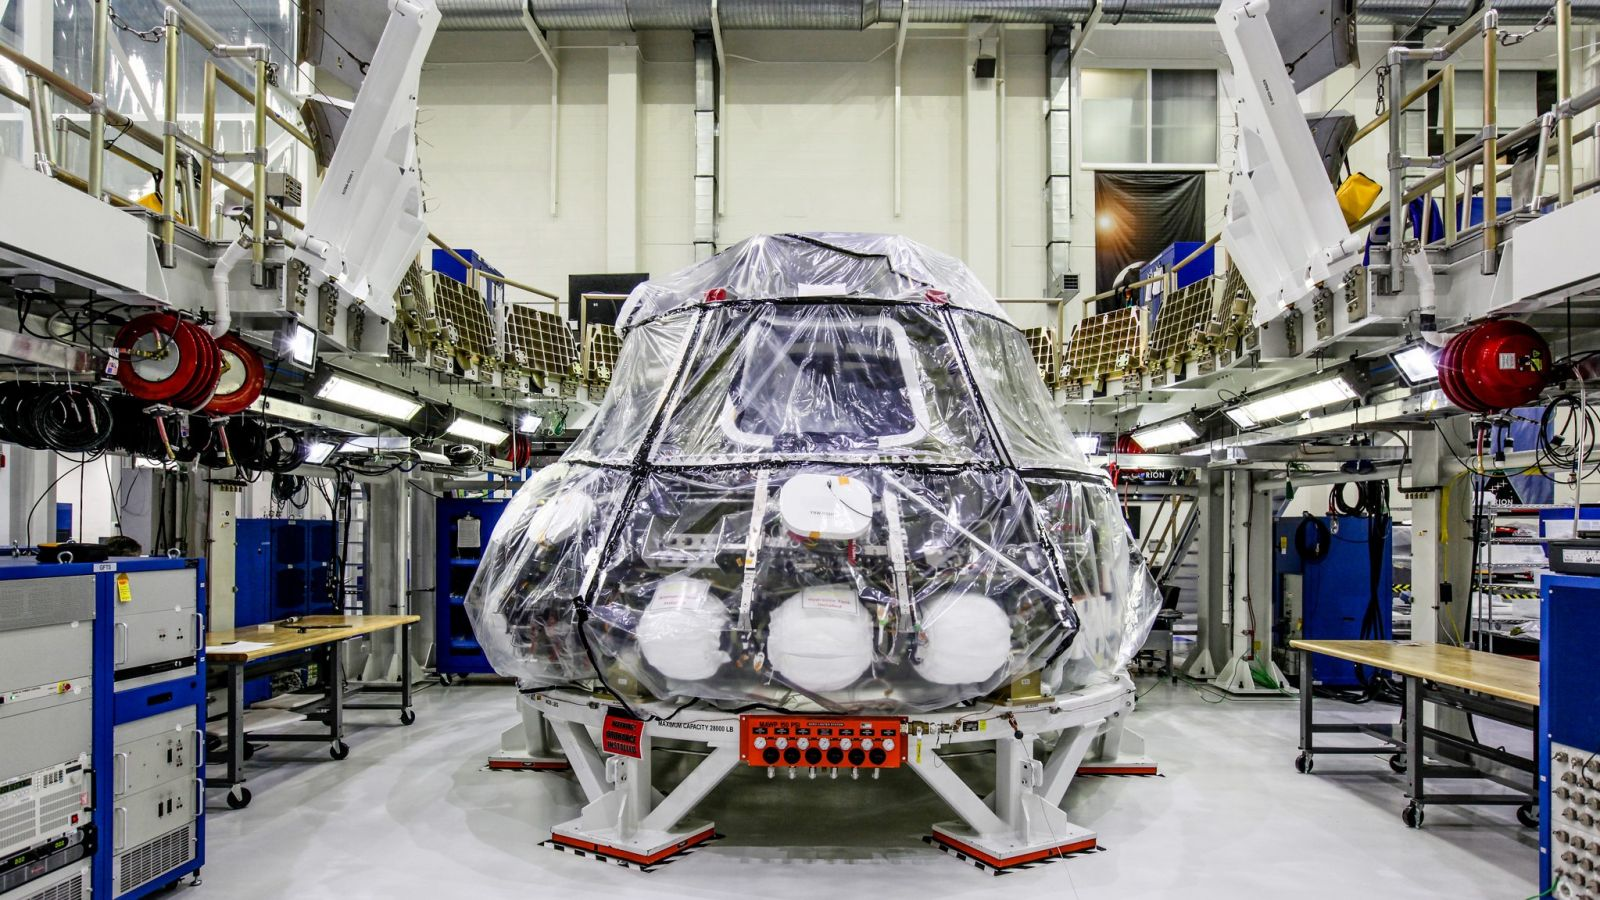 NASA's Orion spacecraft as seen at the Kennedy Space Center's Neil Armstrong Operations and Checkout Building. Engineers recently completed a power-on test in advance of the first integrated flight atop the space agency's Space Launch System rocket. The EM-1 mission is slated for sometime in 2019. Photo Credit: Leif Heimbold / NASA